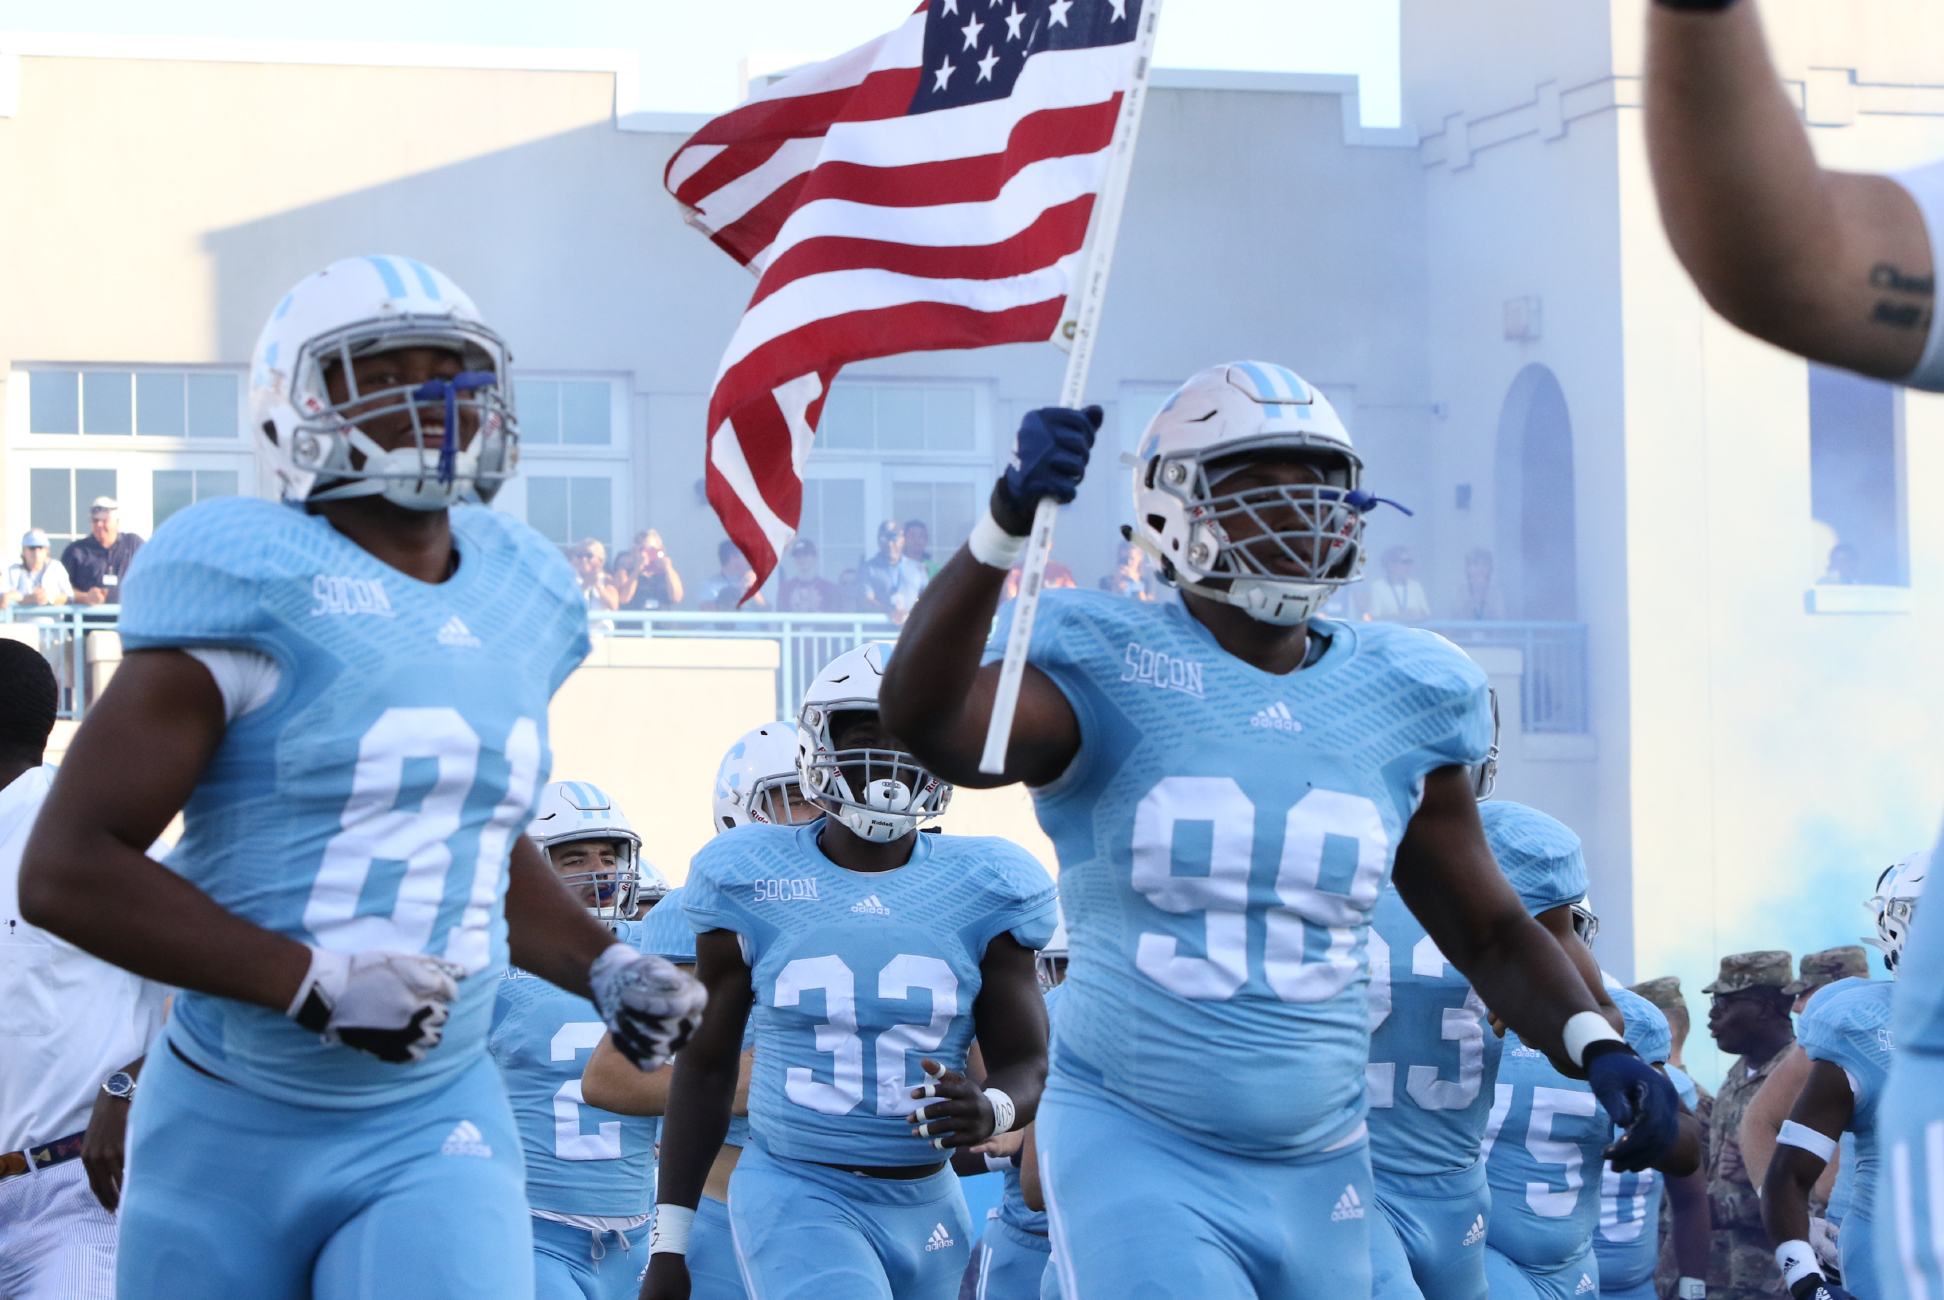 Citadel Brigadiers Foundation football team carrying american flag